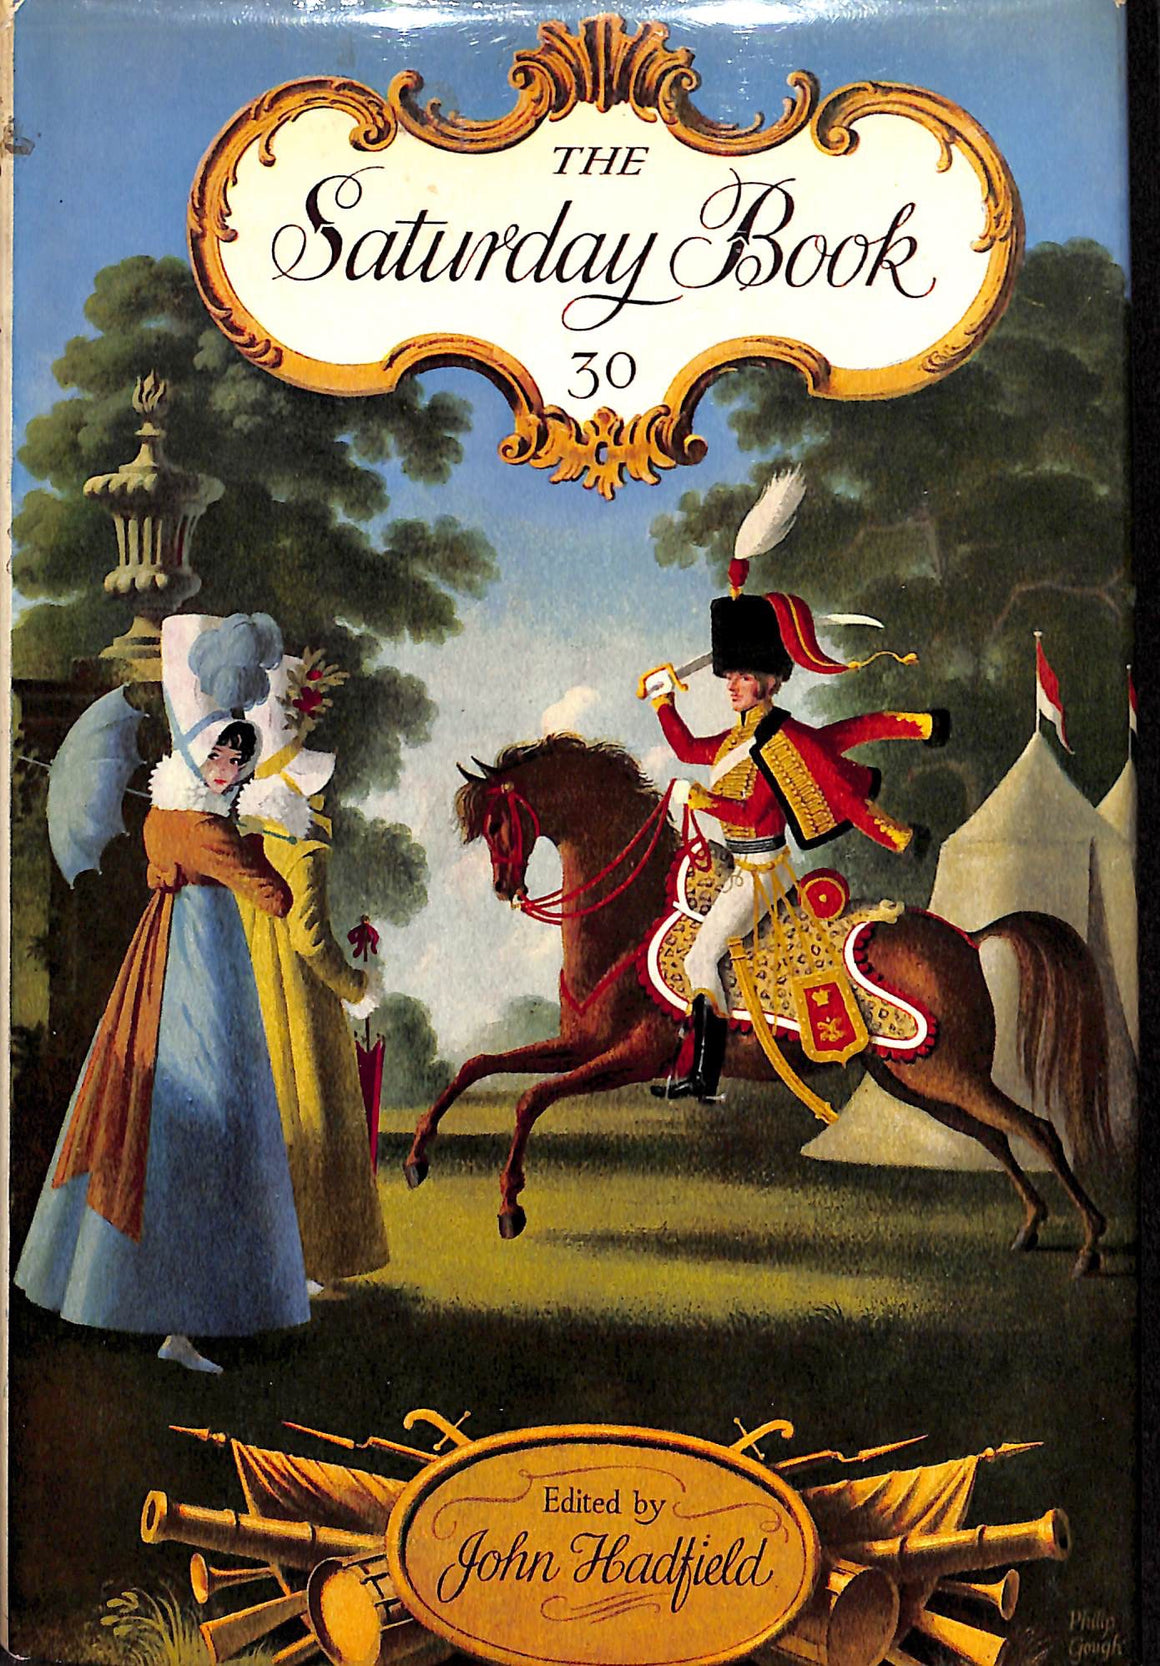 The Saturday Book by John Hadfield